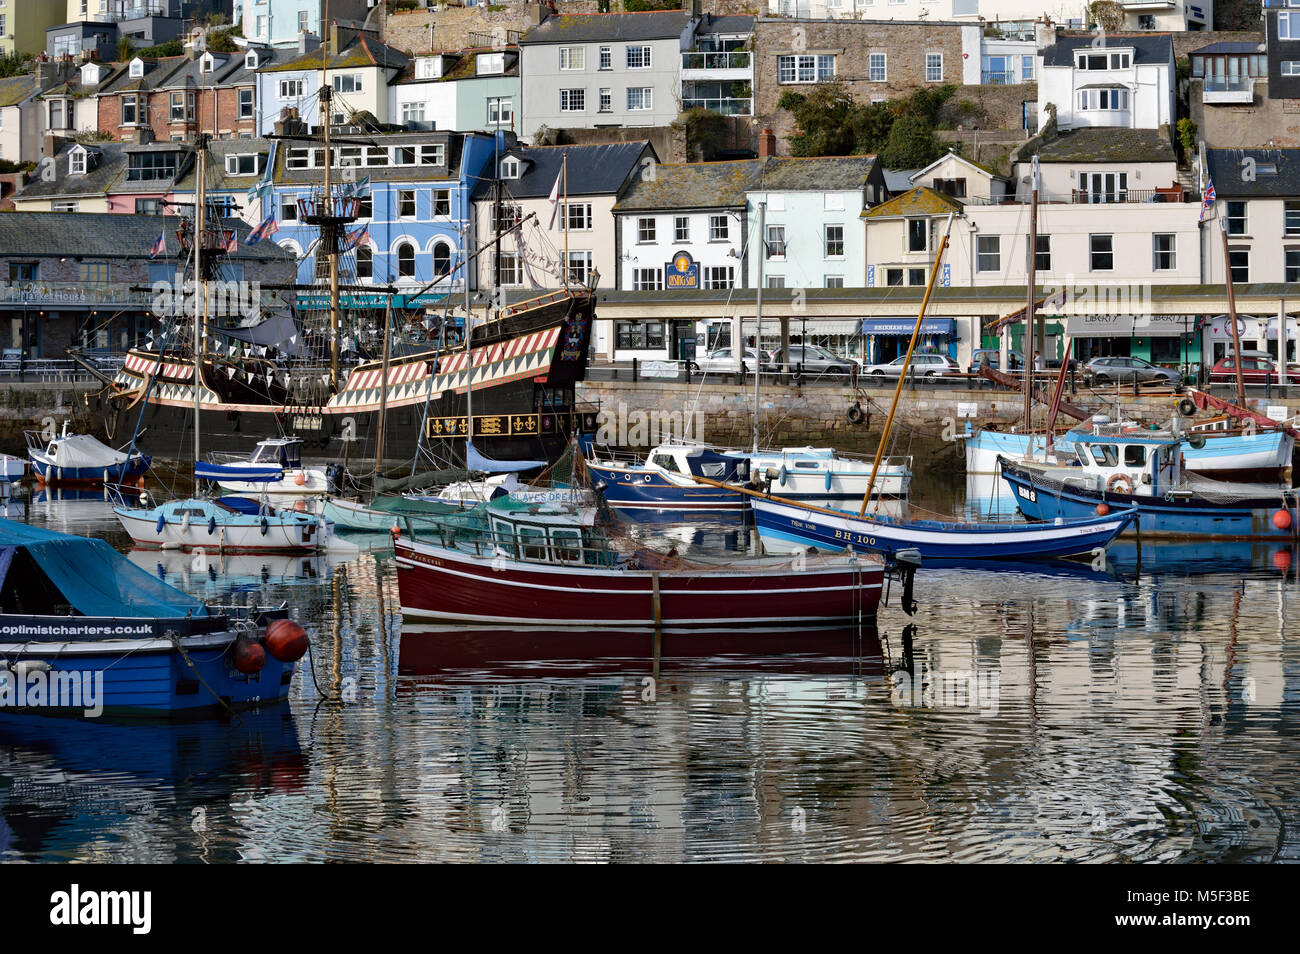 View of boats in Brixham Harbour including Golden Hind, Heritage Vessel 'IRIS' and True Vine with harbourside - Stock Image